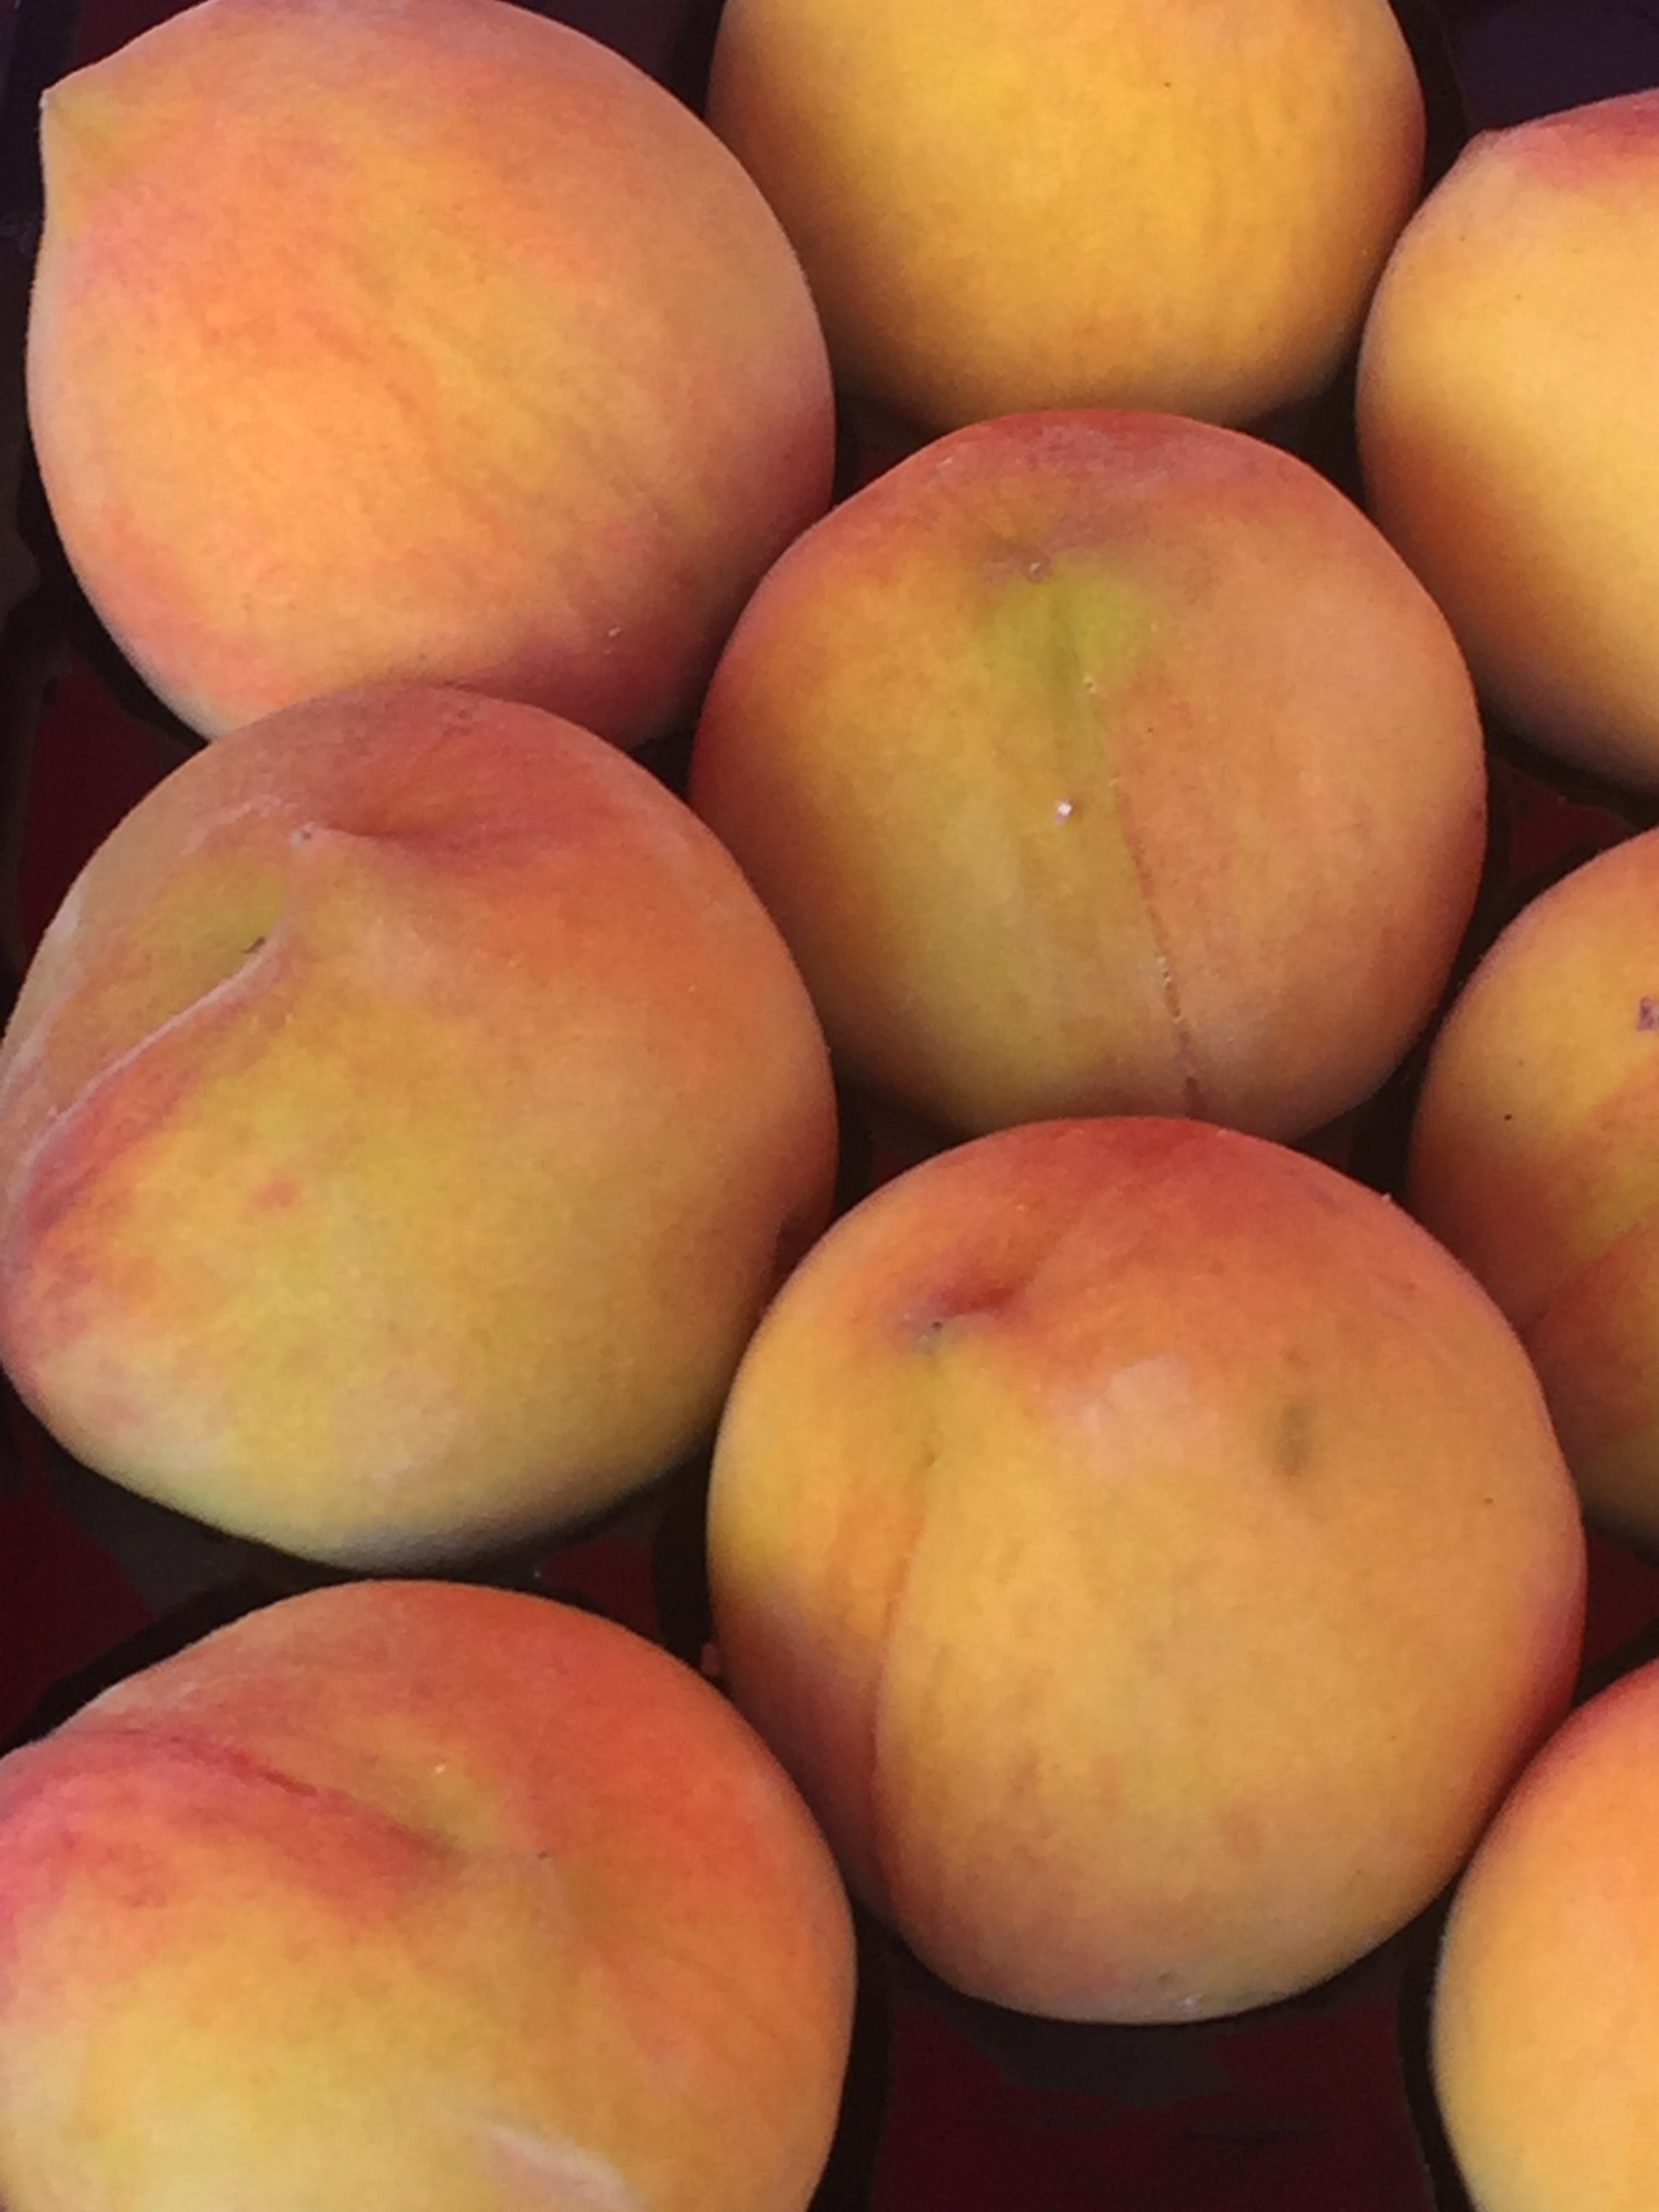 Peaches help fight cancer, obesity, asthma, cholesterol, potassium deficiency, anti-aging & ensure healthy eye sight.